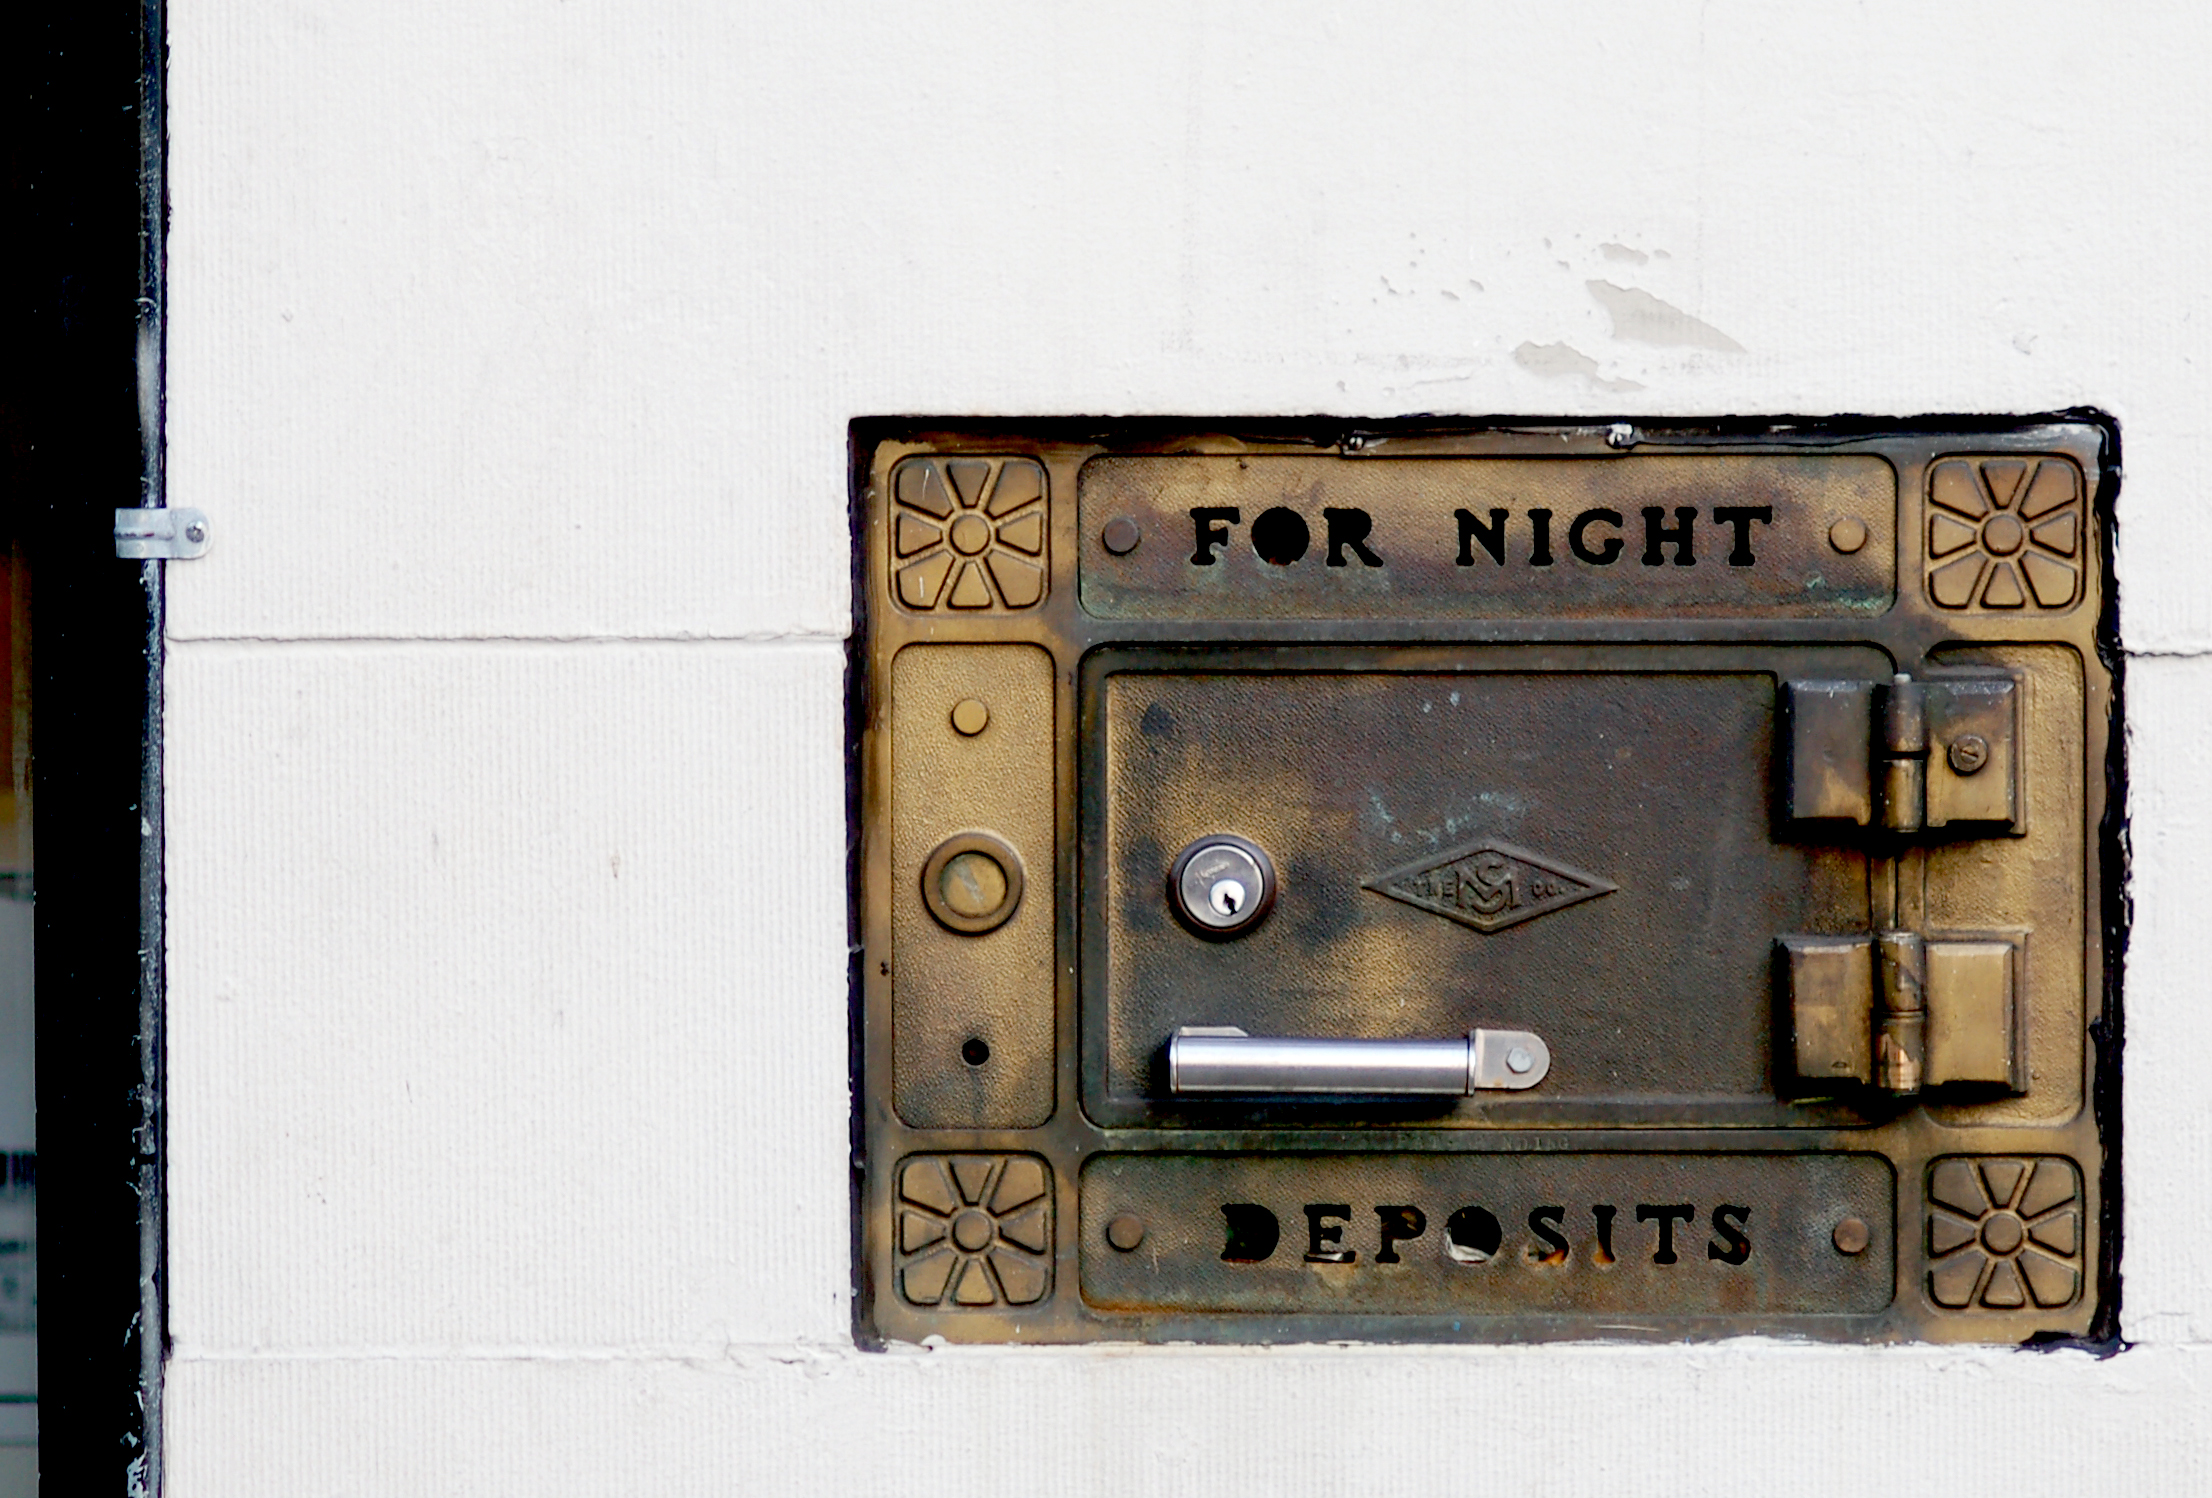 For Night Deposits by C.J.TM https://www.flickr.com/photos/bigluzer/216318107 (CC BY-NC 2.0)